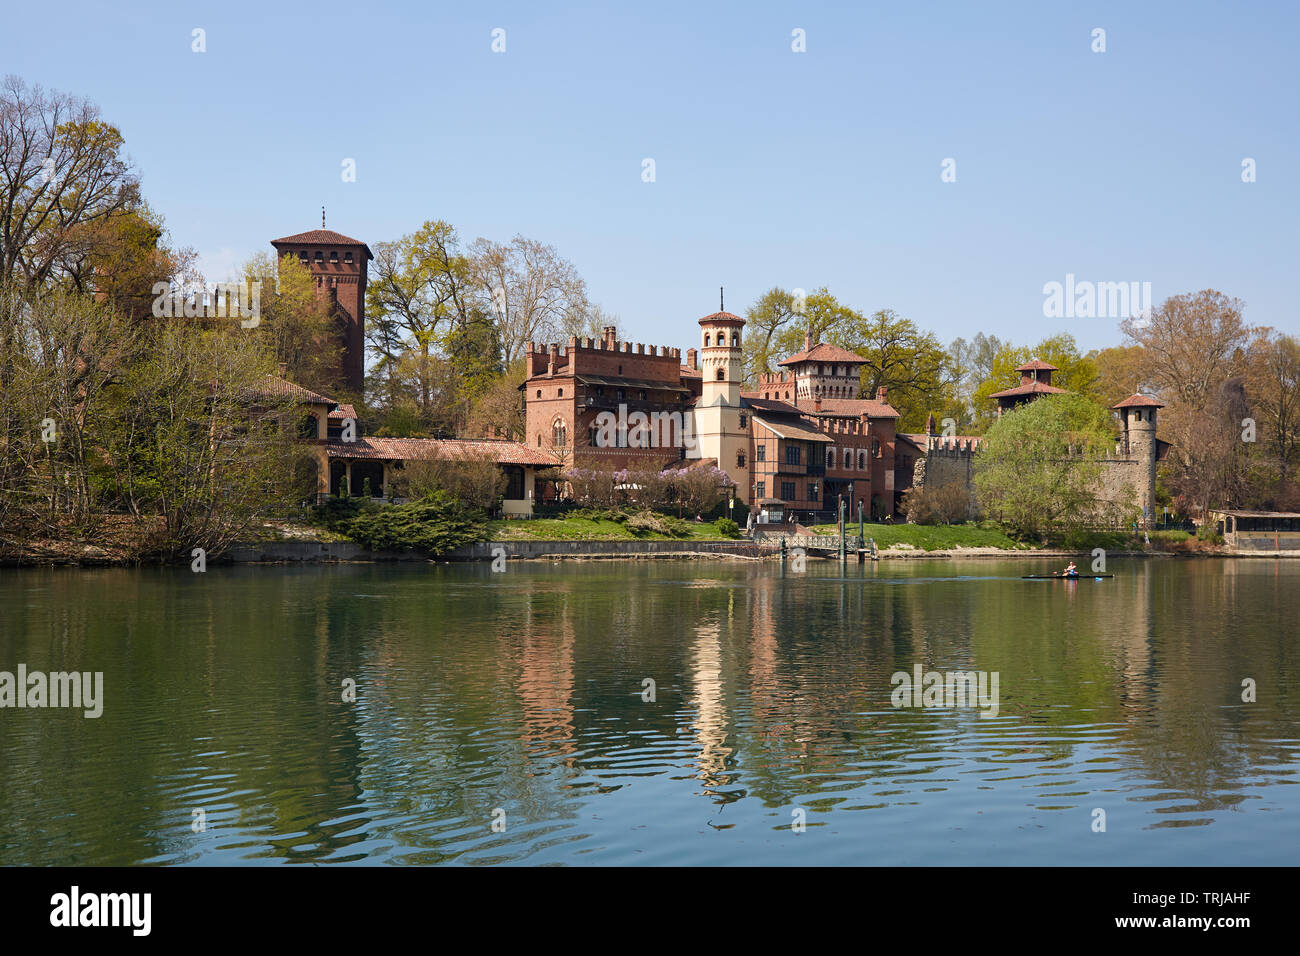 TURIN, ITALY - MARCH 31, 2019: Borgo medievale, medieval village and castle with Po river in a sunny day, man with canoe in Piedmont, Turin, Italy. Stock Photo